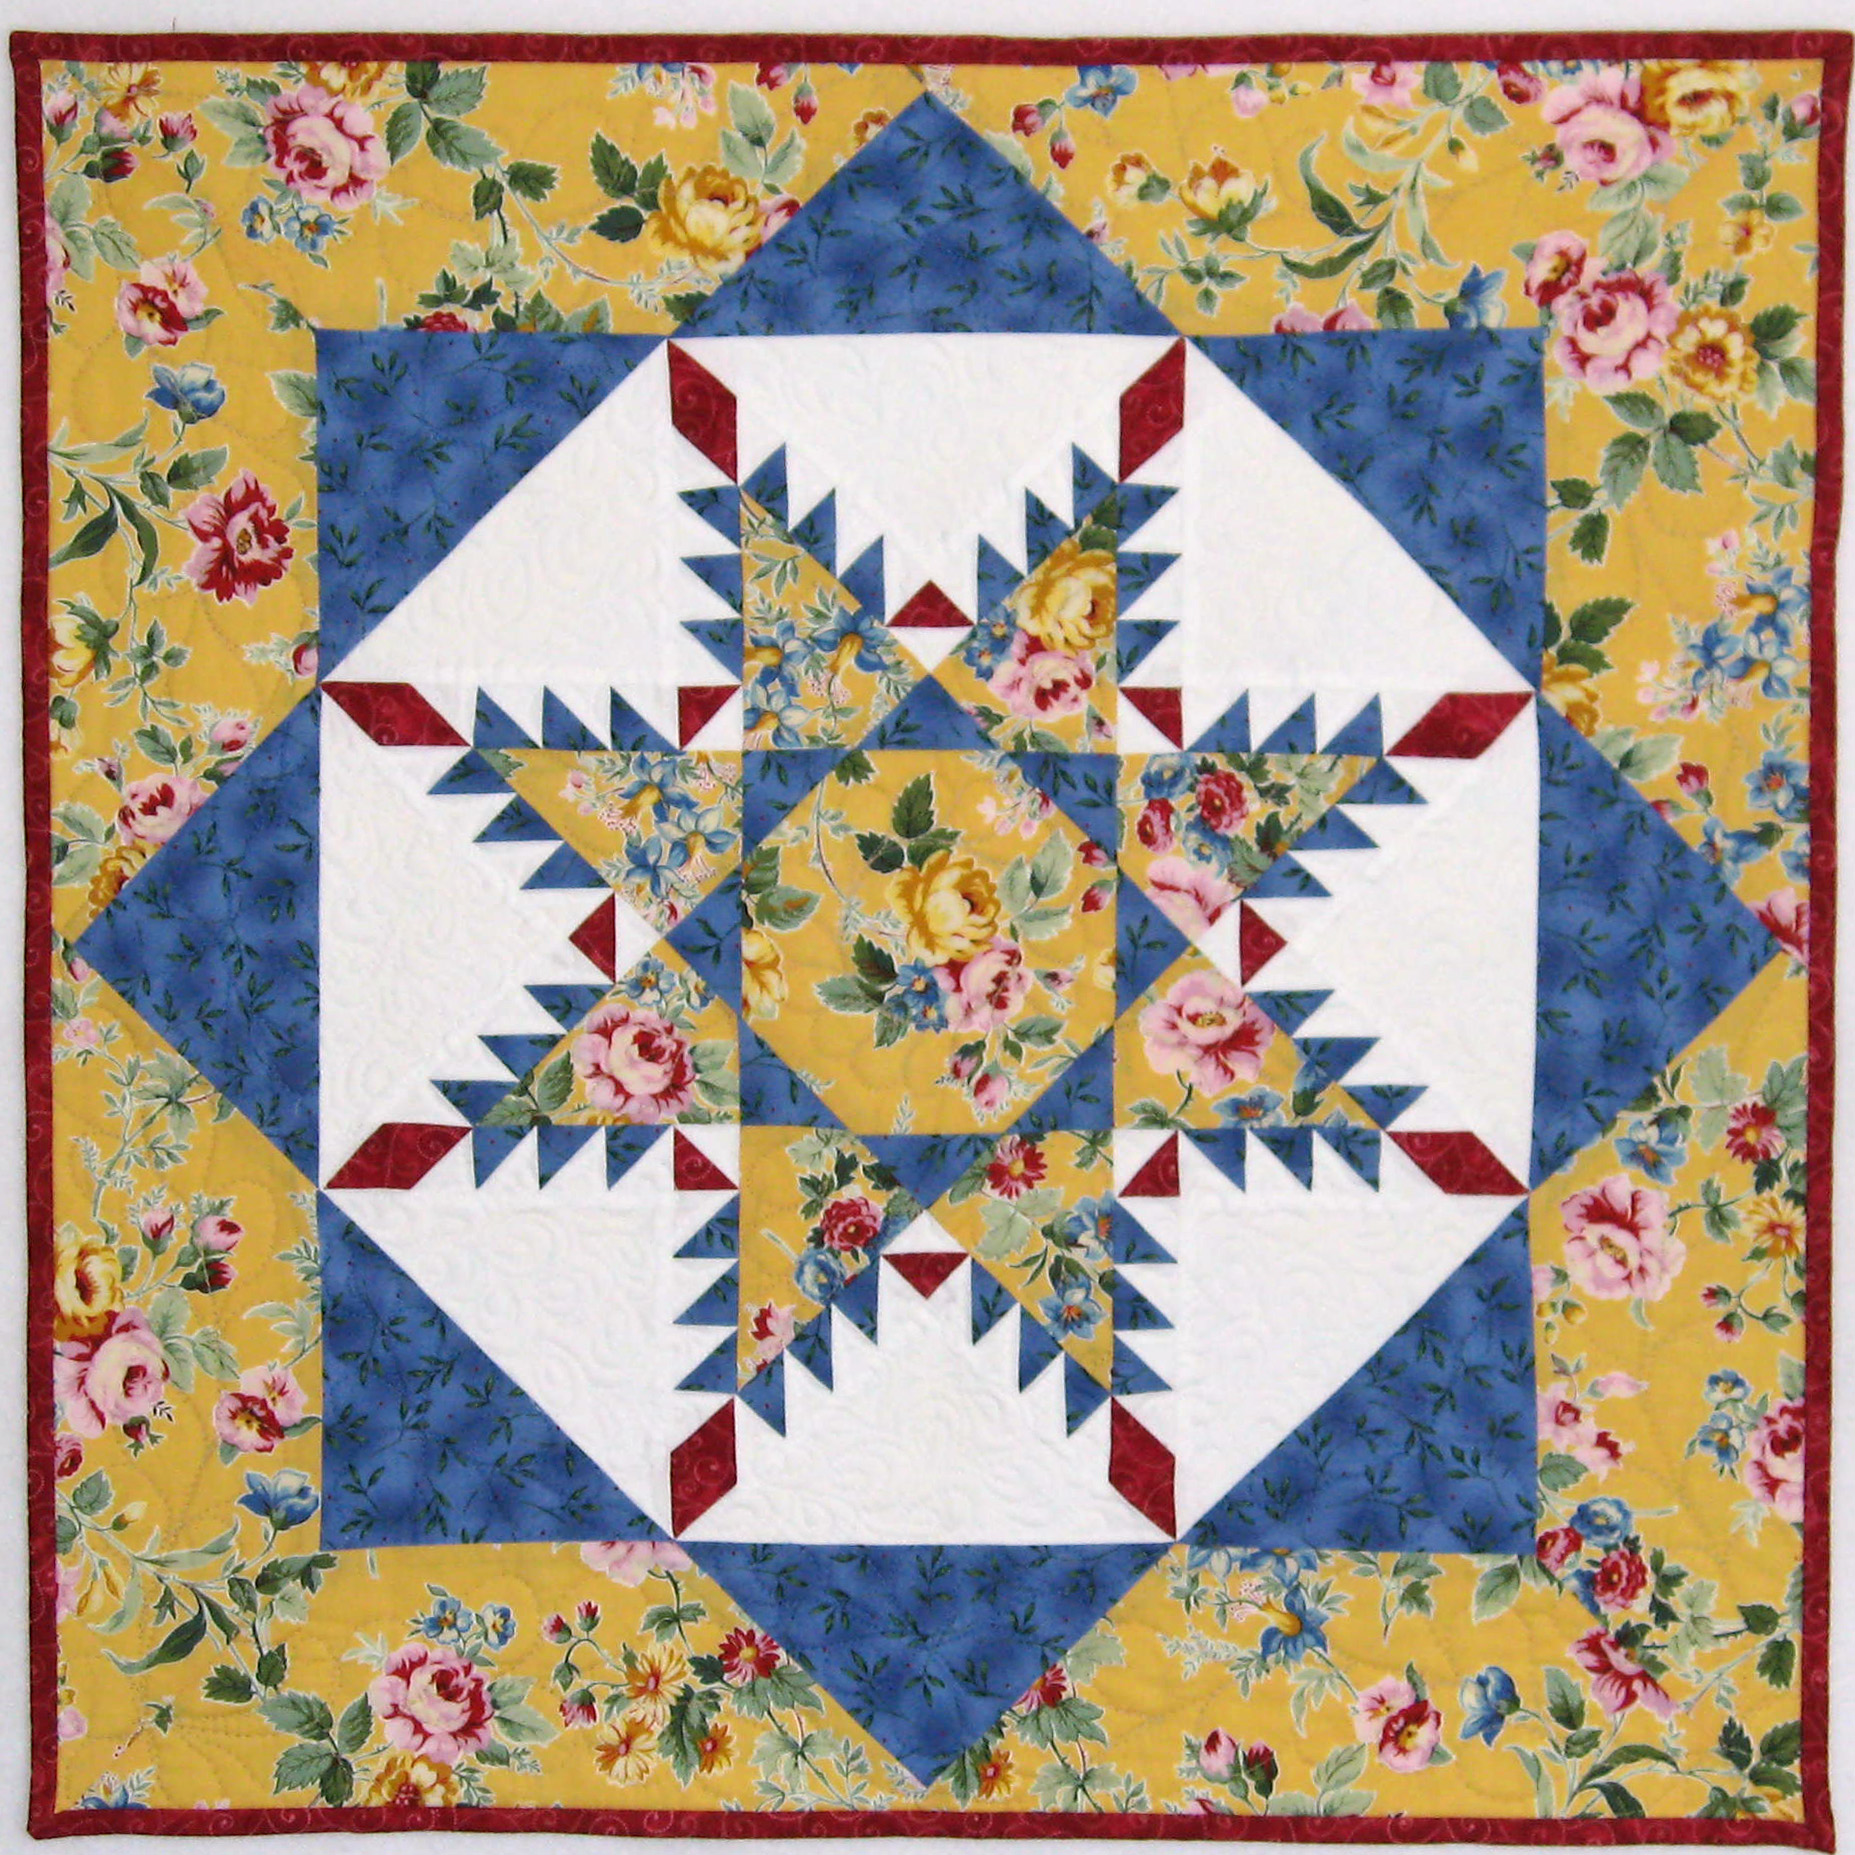 Feathered Star Quilts - One Piece at a Time : feathered star quilts - Adamdwight.com